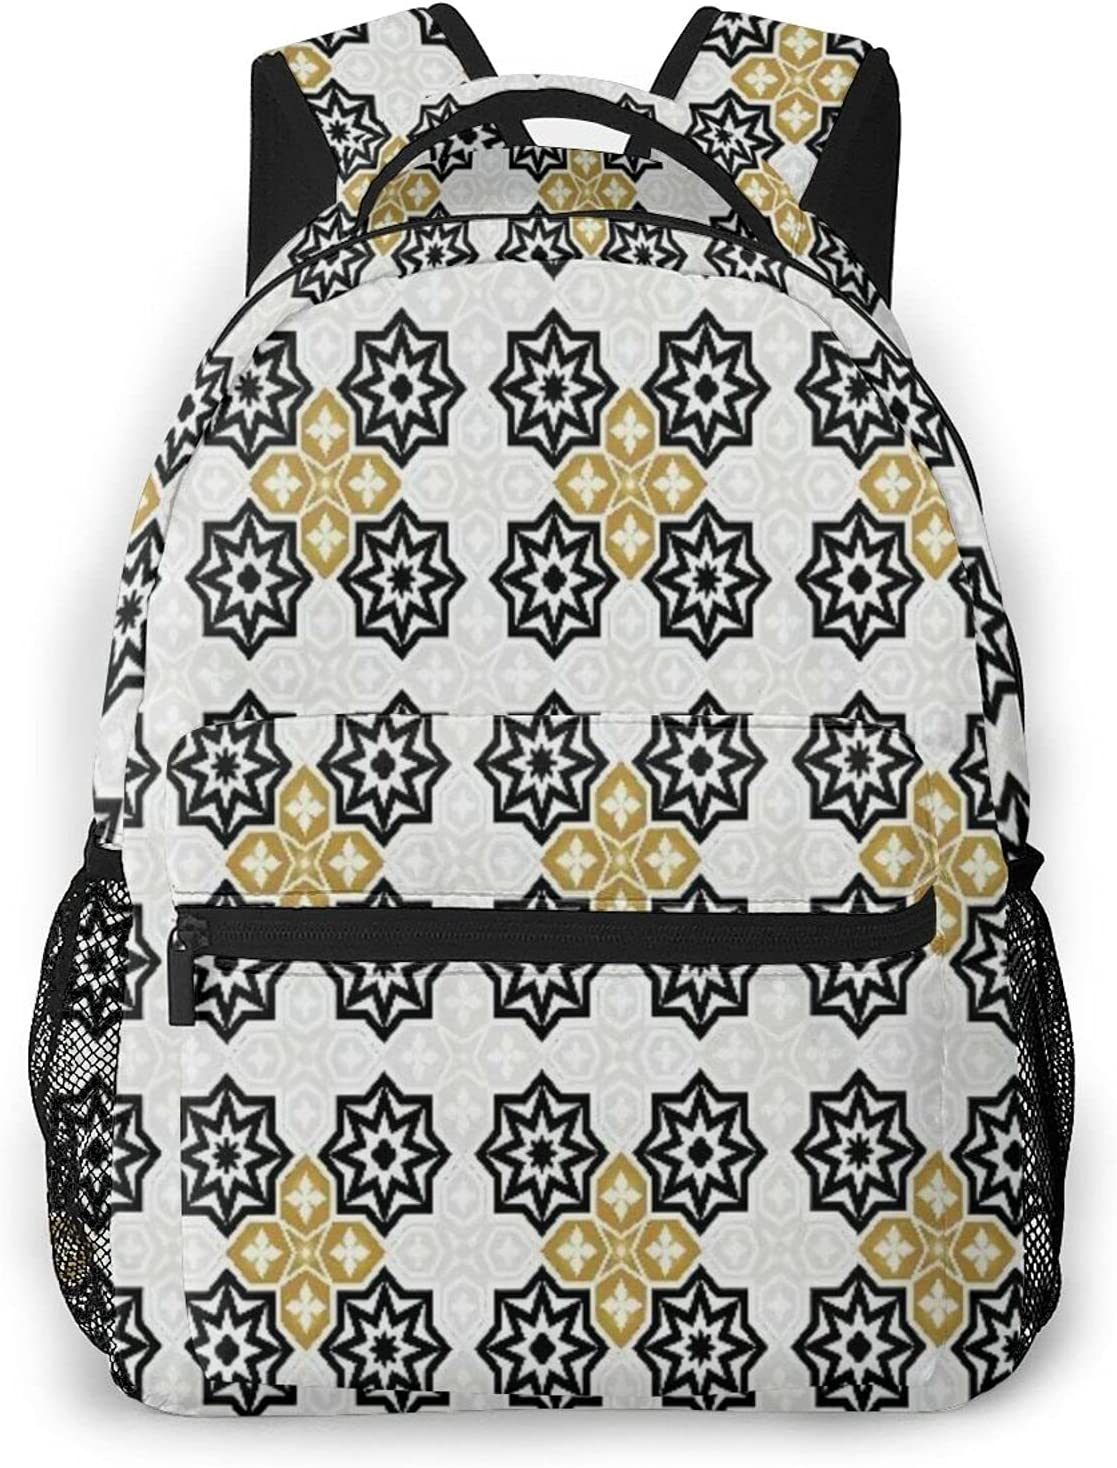 Backpack for Teens Chicago Mall Men Women Storage Miami Mall Packet Golden Co Ivory Dust